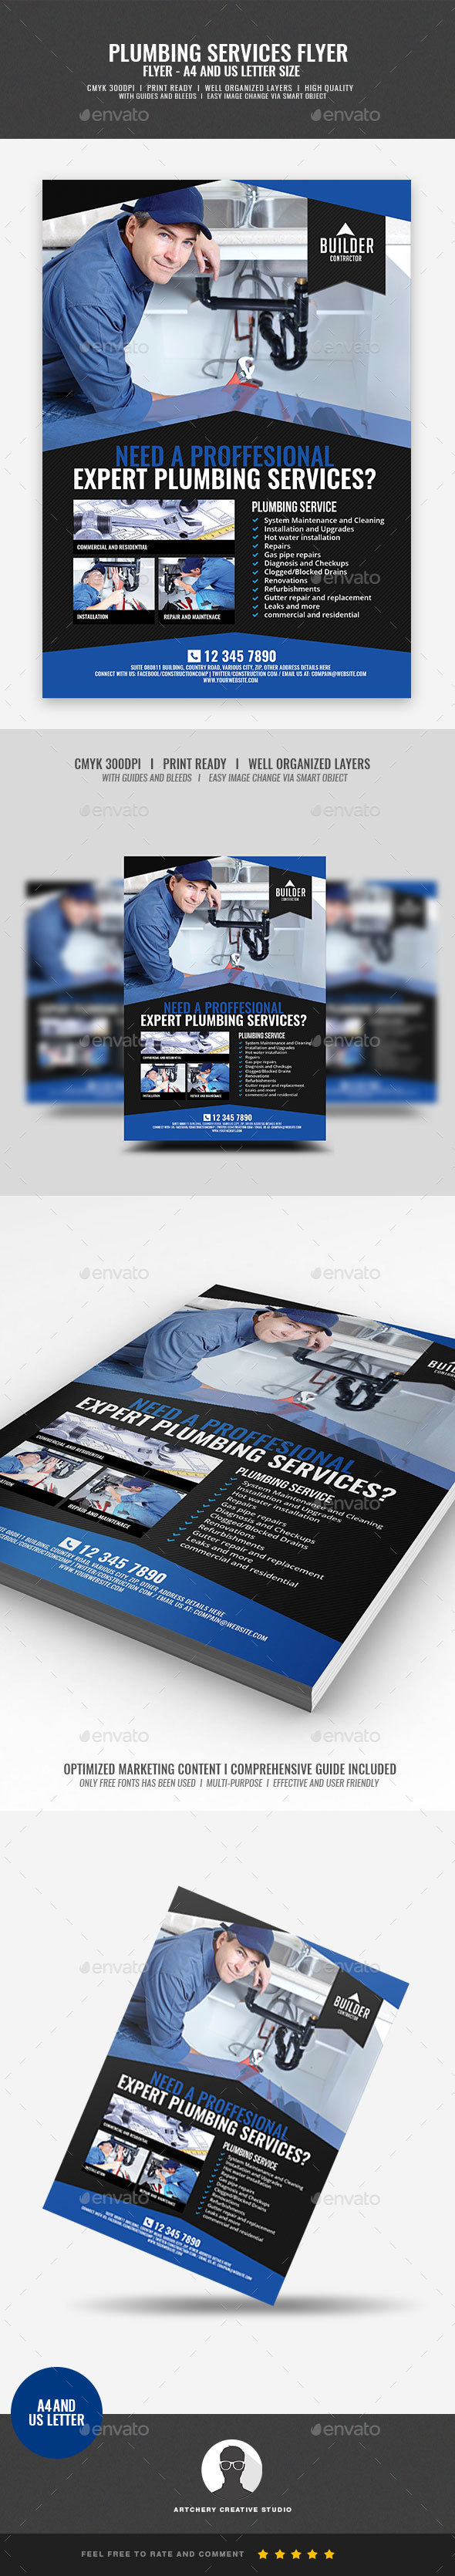 Plumbing Service Flyer - Commerce Flyers